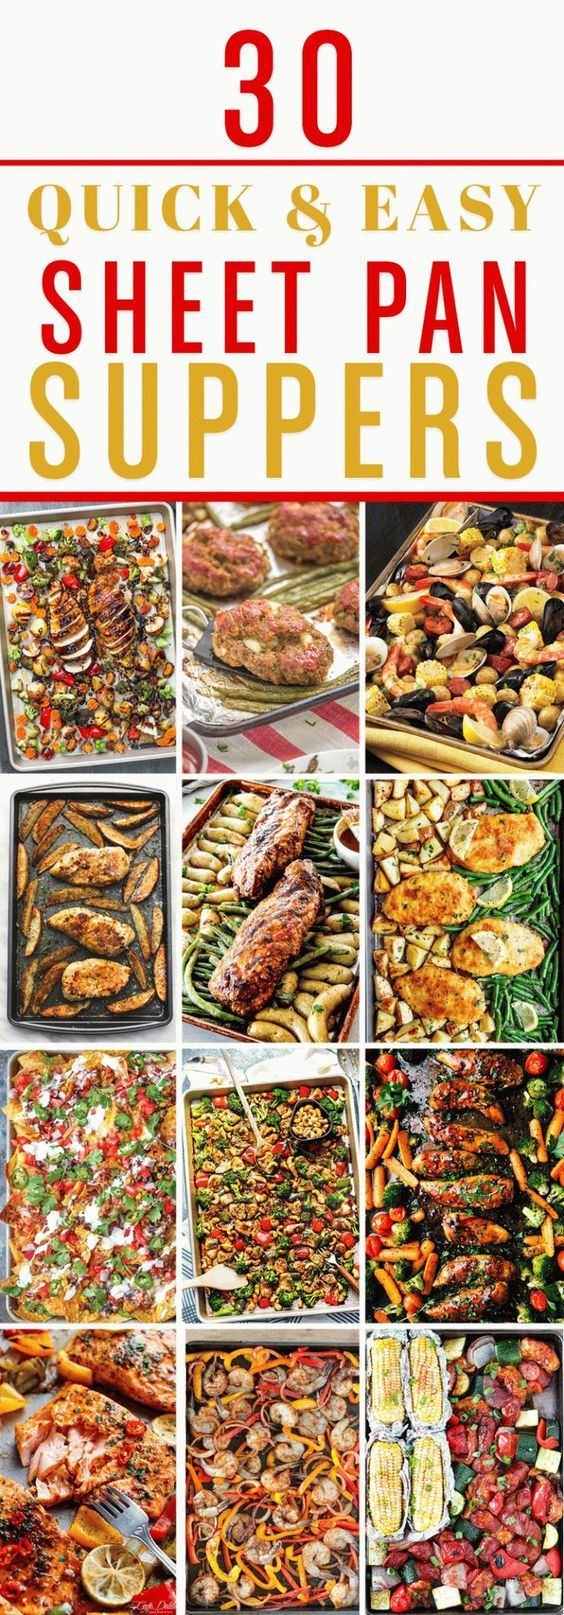 These sheet pan dinners are your answer to quick, easy, and healthy meals for your family!